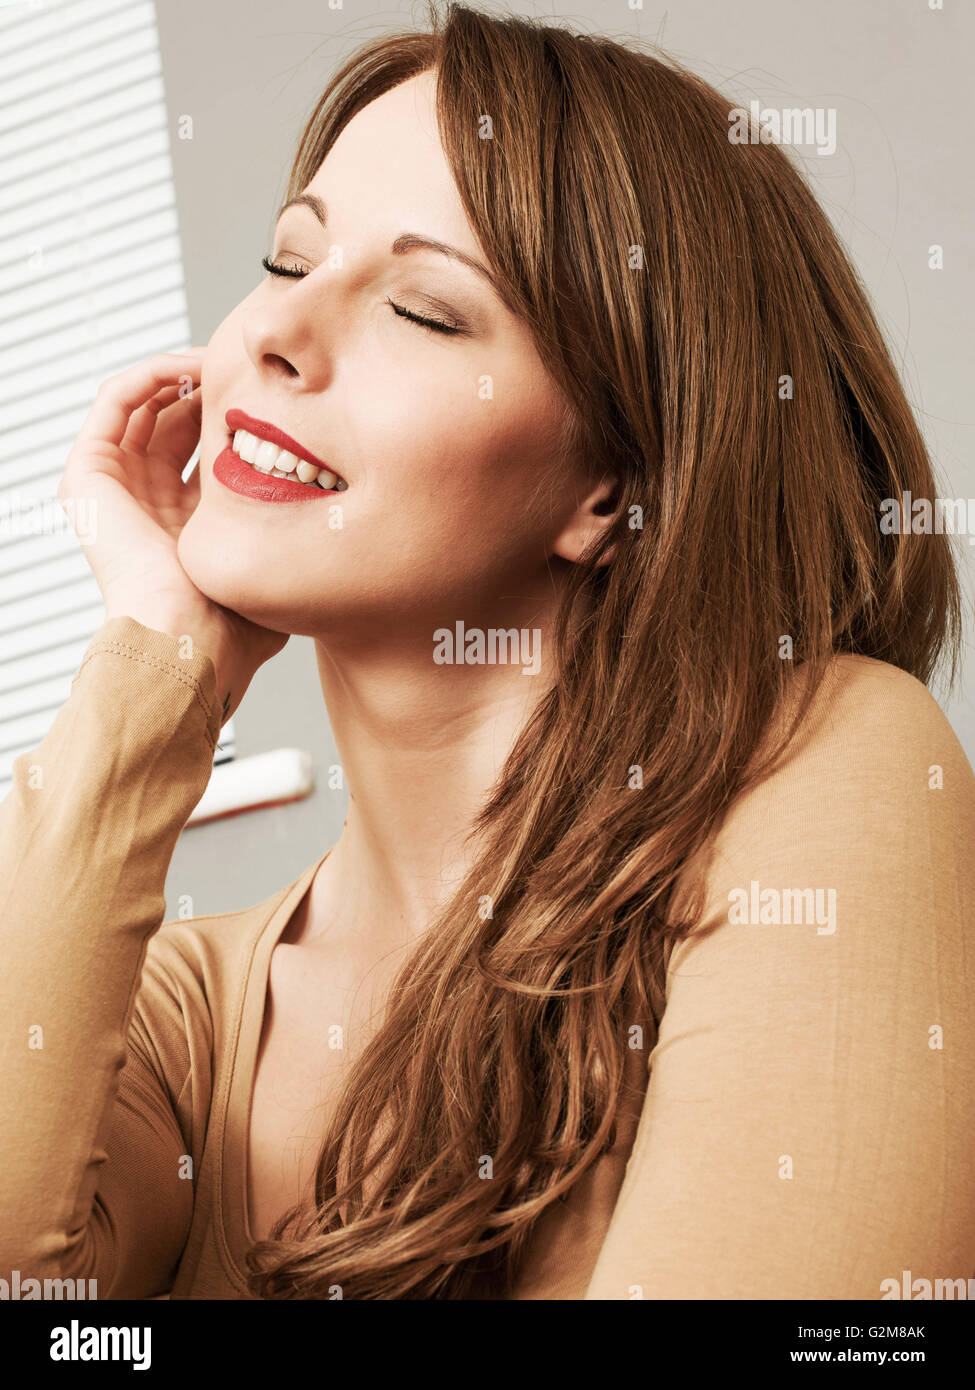 Portrait of a Happy Smiling Woman Remembering the Good Times Or Relieved a Personal Problem Has Been Resolved - Stock Image